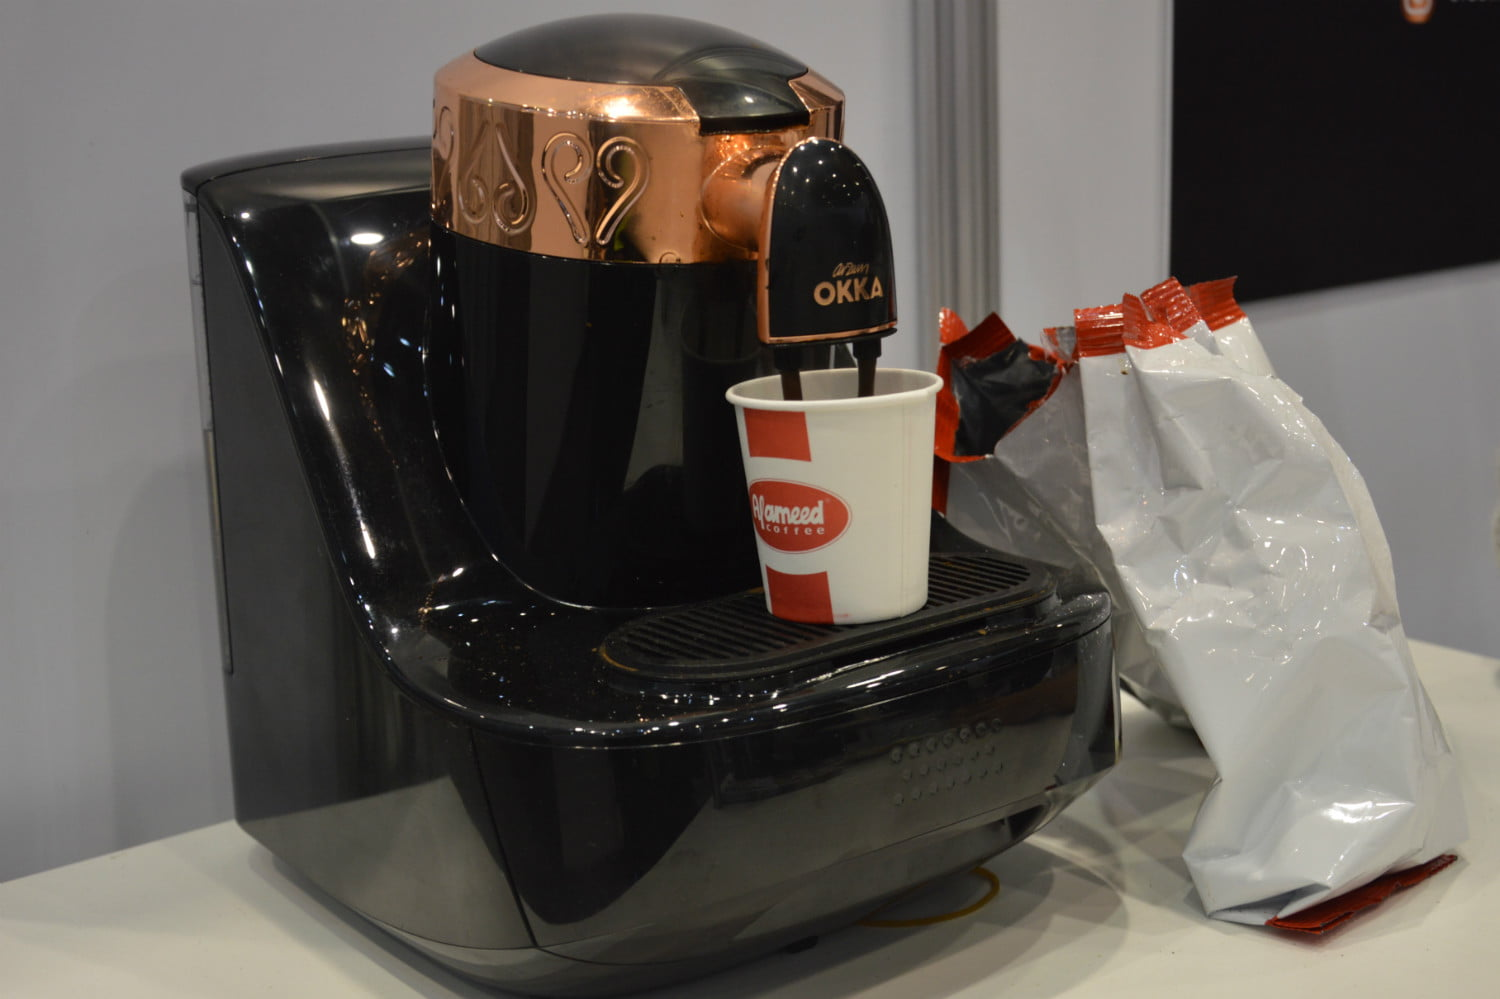 A Roundup Of Cool Coffee Devices From The International